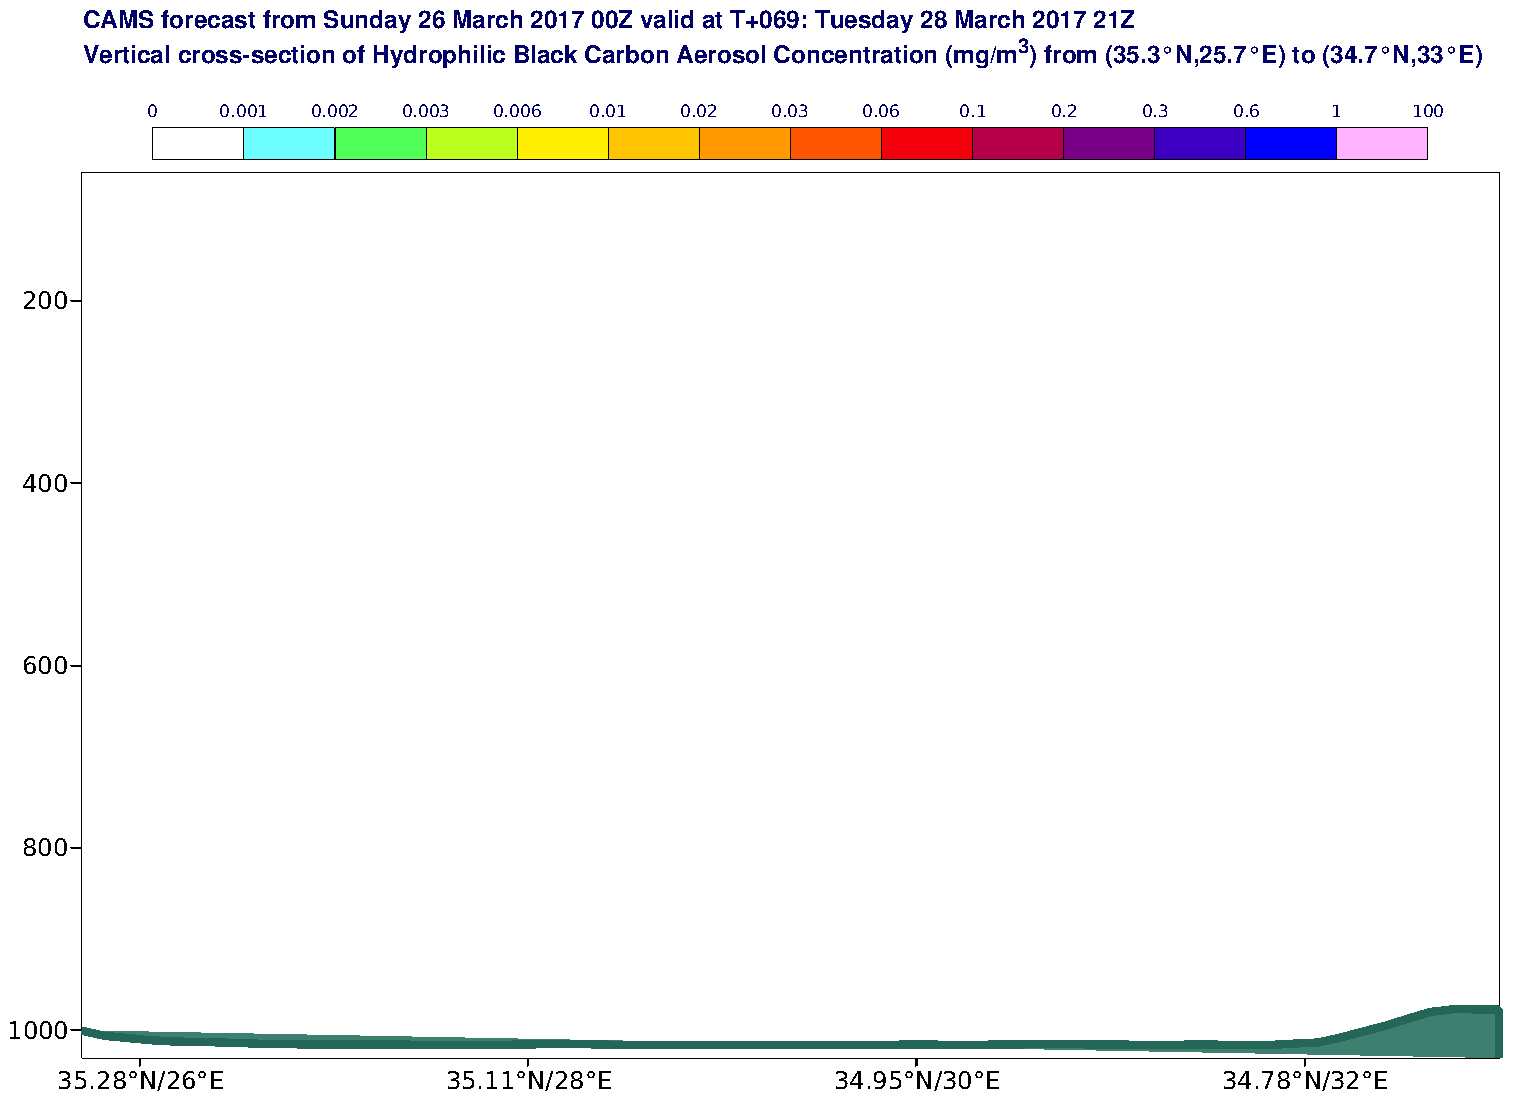 Vertical cross-section of Hydrophilic Black Carbon Aerosol Concentration (mg/m3) valid at T69 - 2017-03-28 21:00